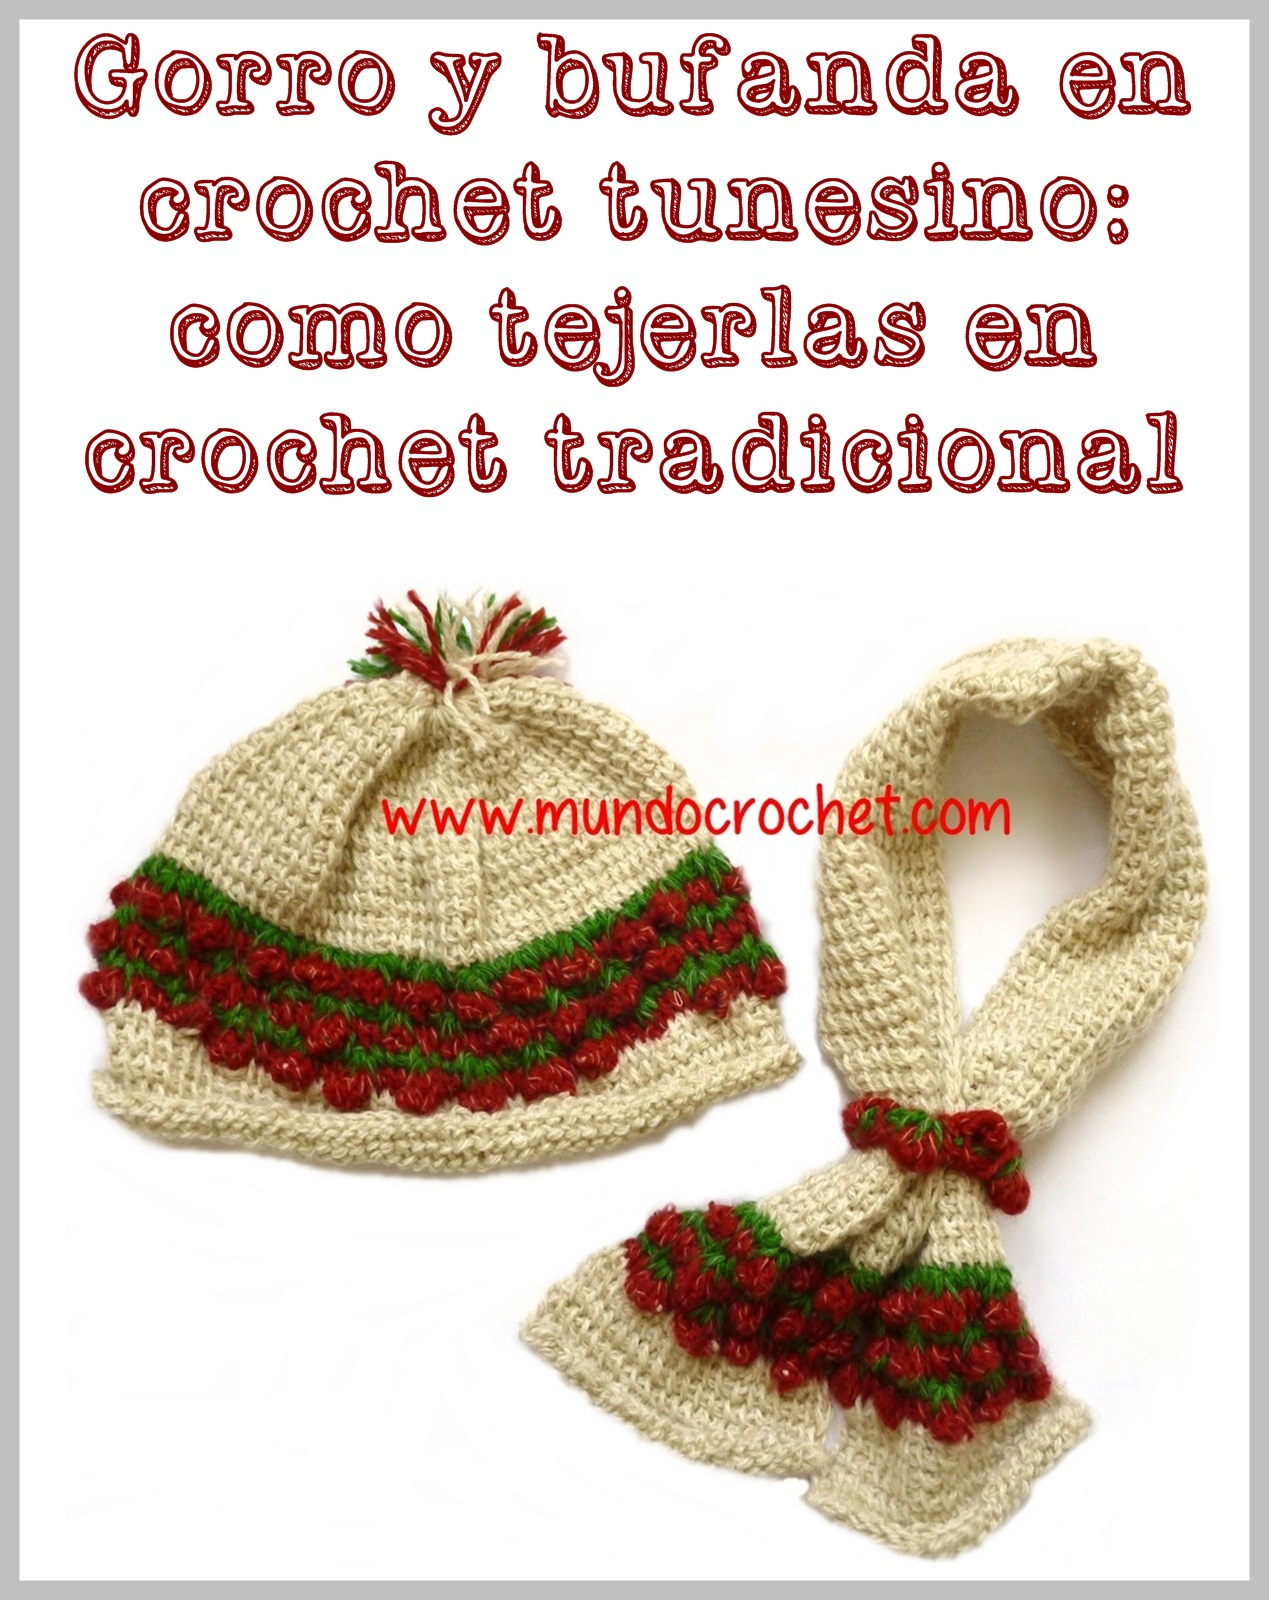 gorro bufanda punto frutilla o strawberry stich crochet o ganchillo